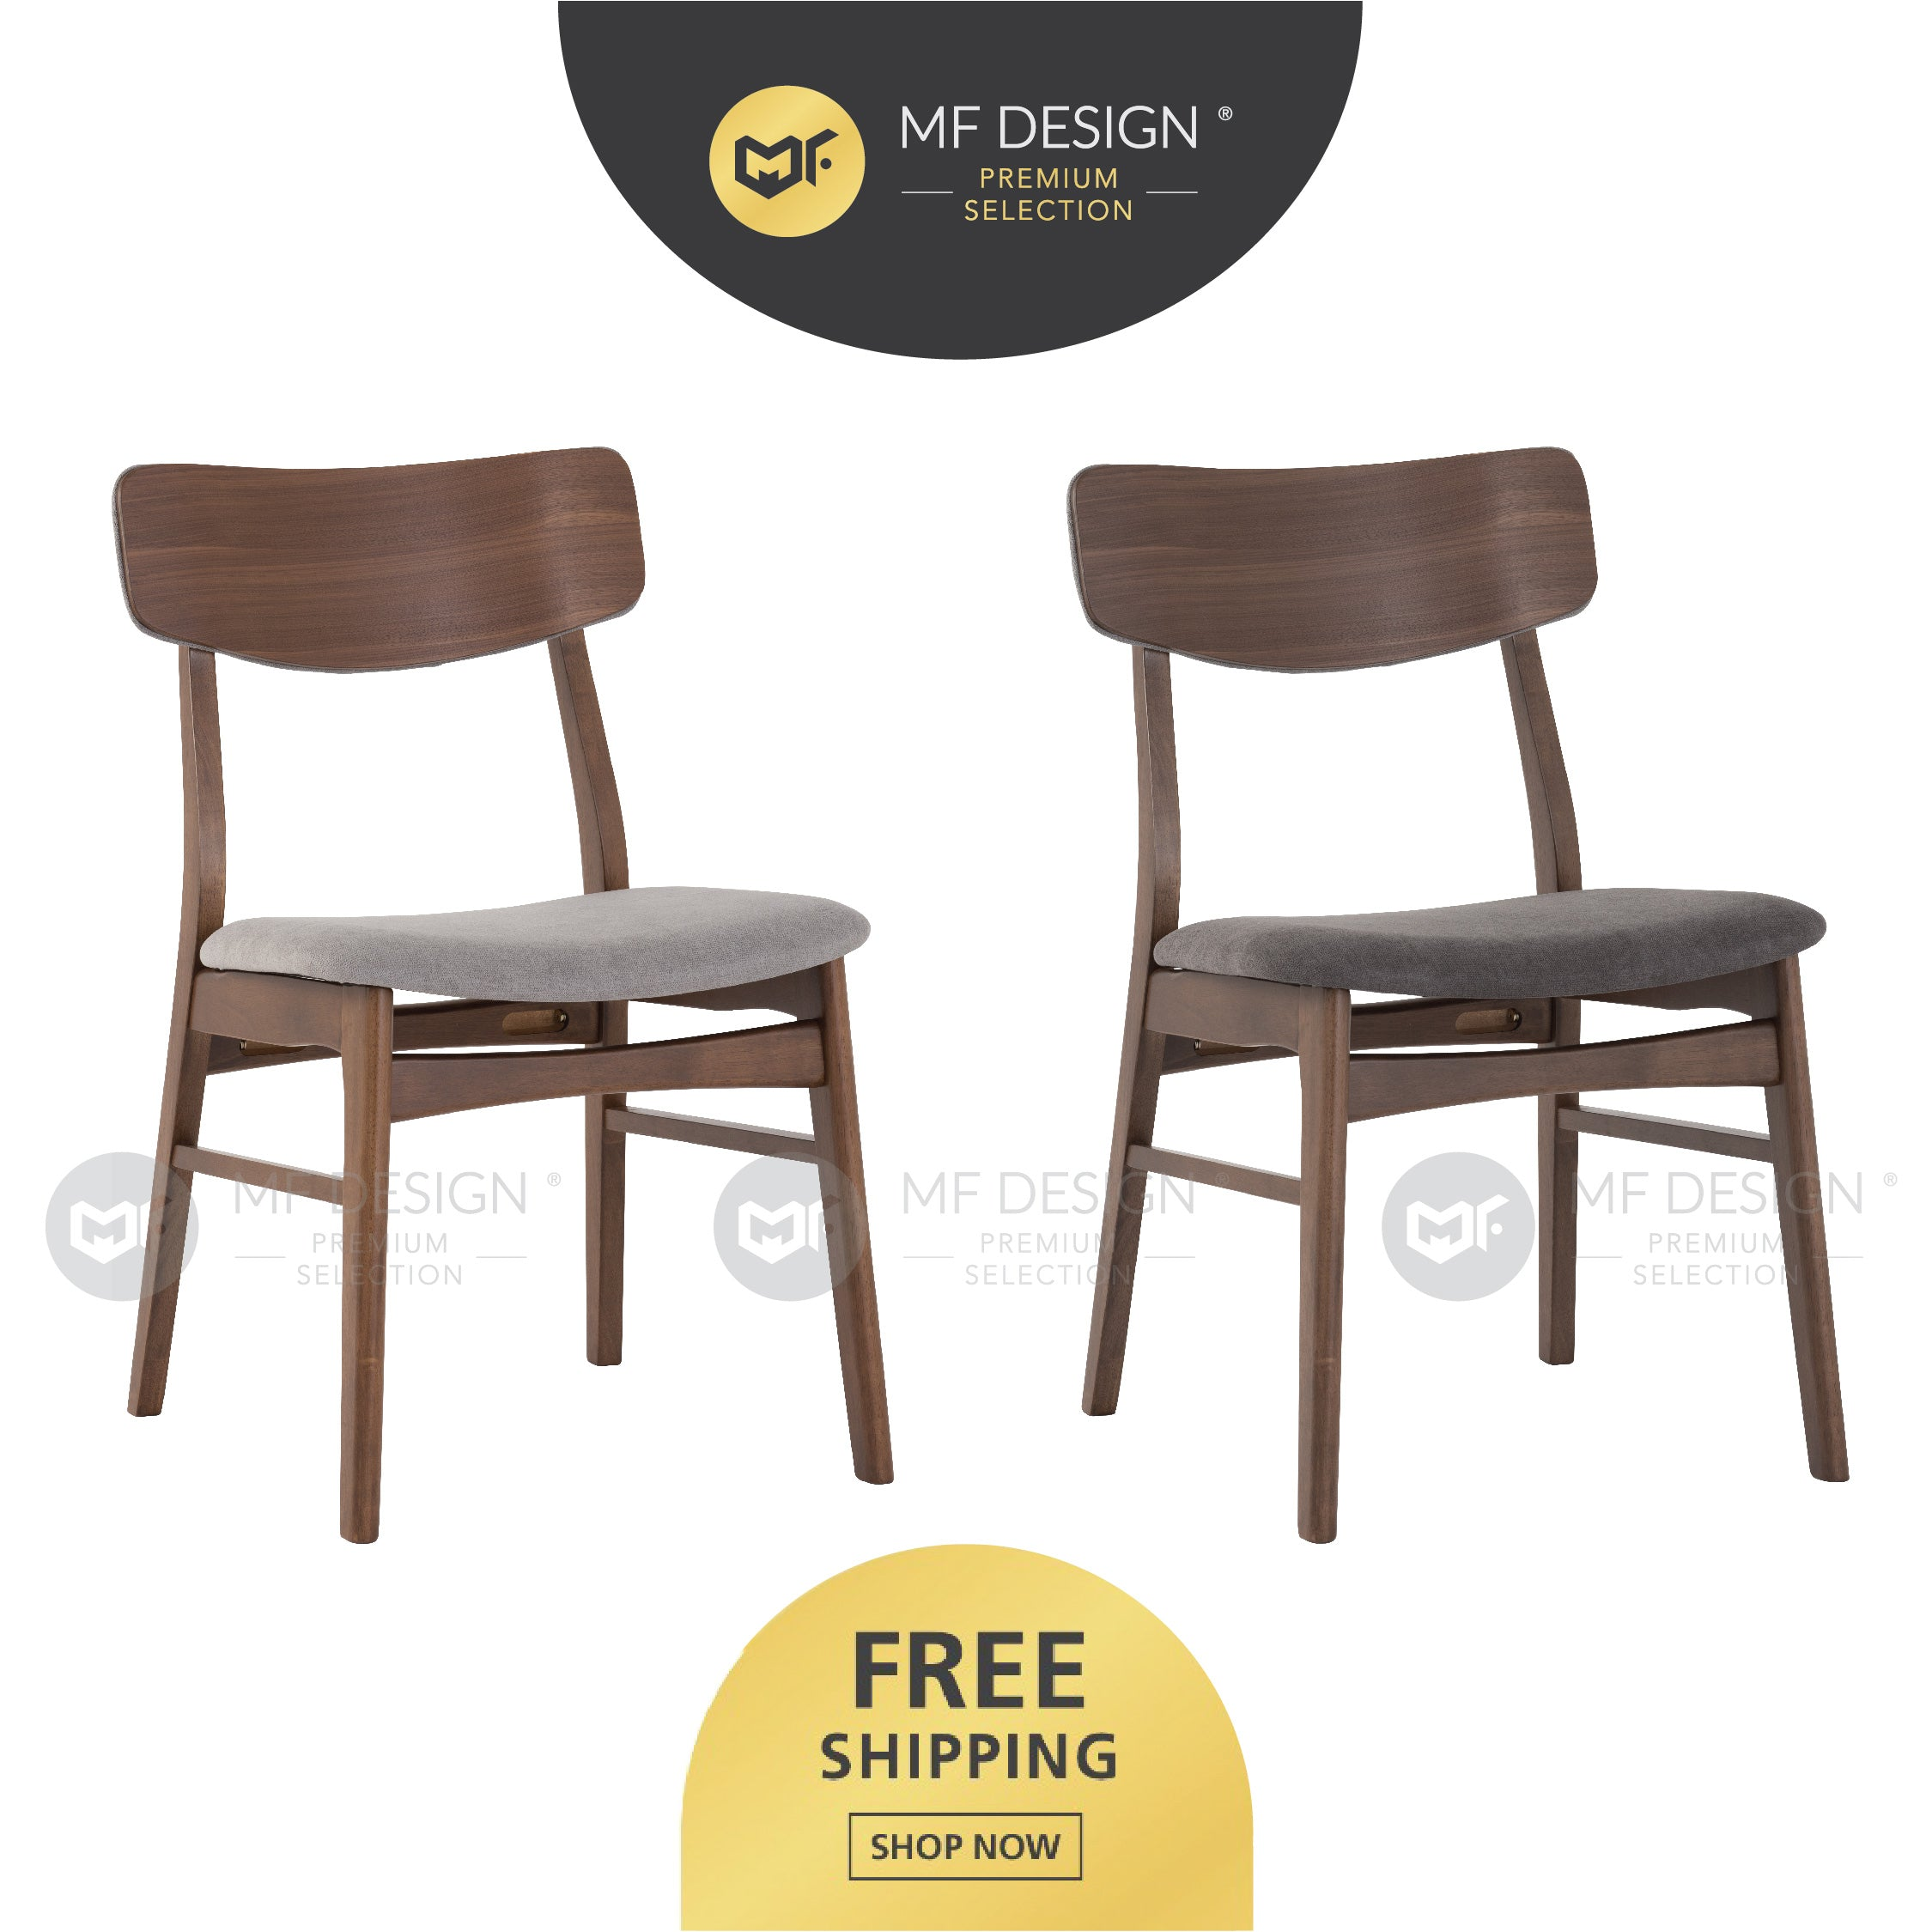 MFD Premium Apple Dining Chair / kerusi / chair